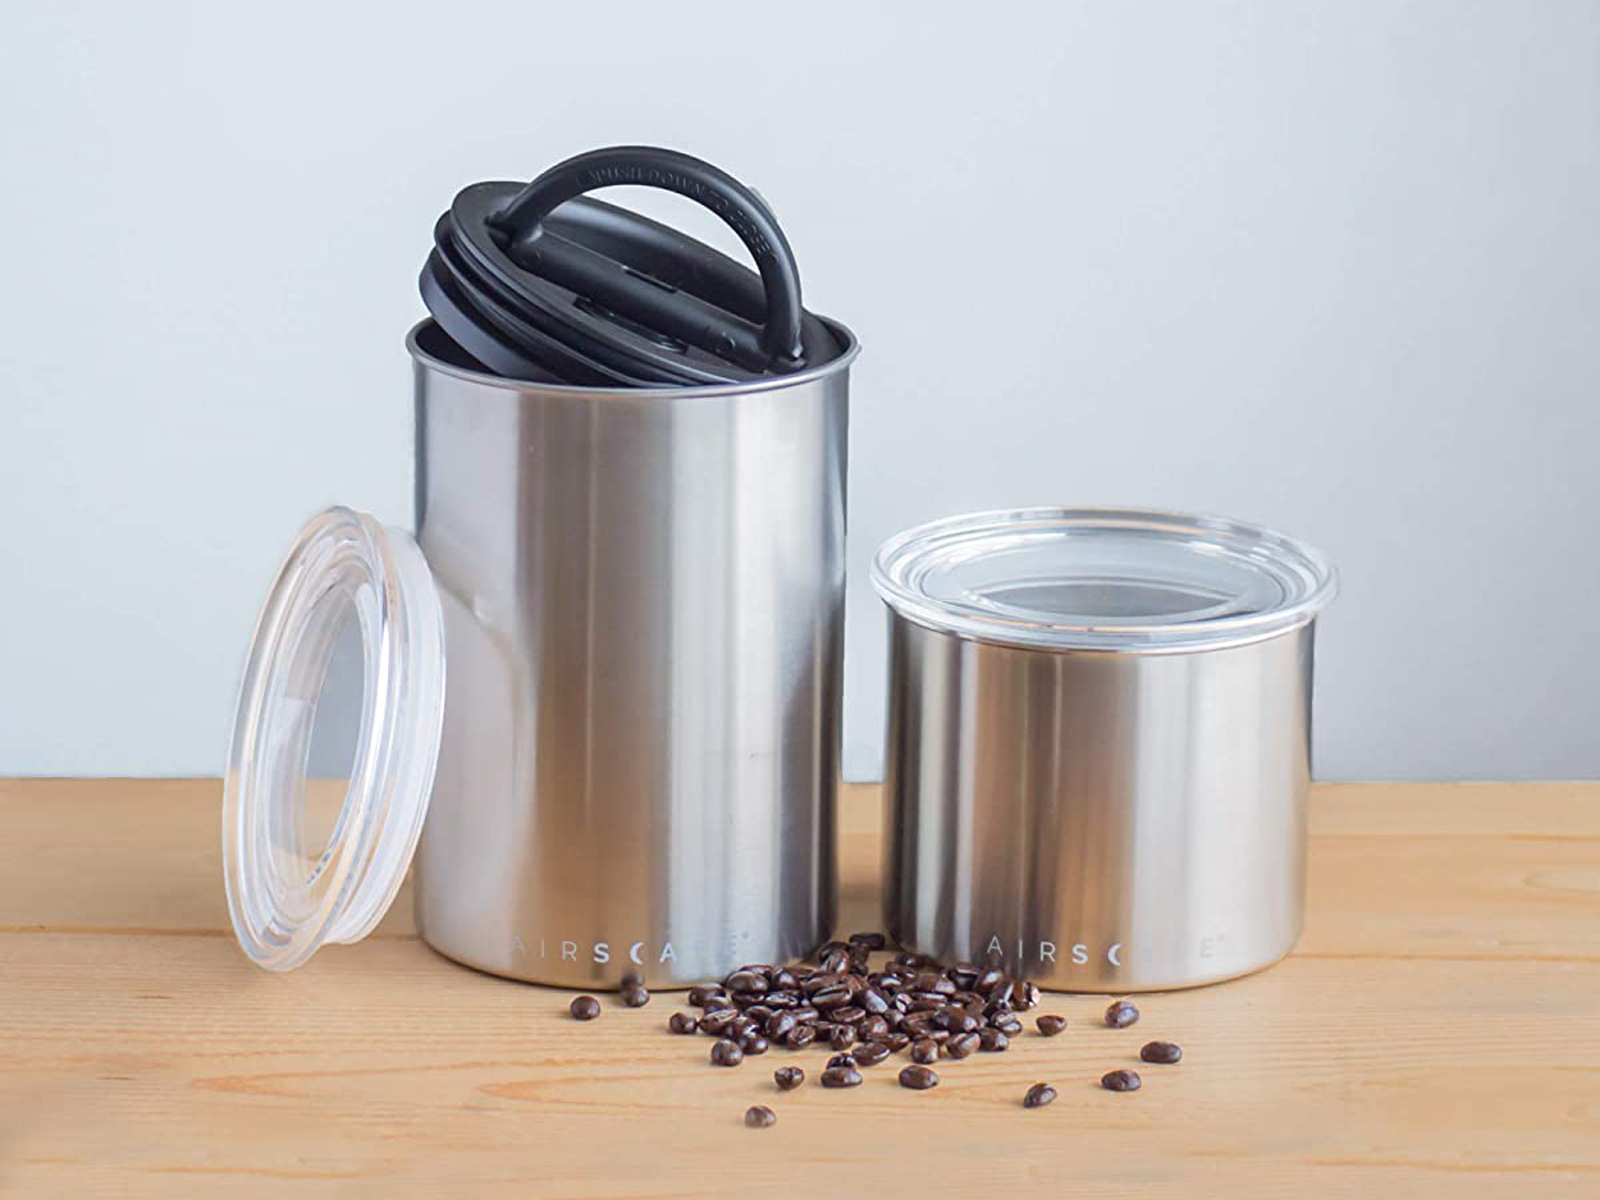 airscape coffee bean canister